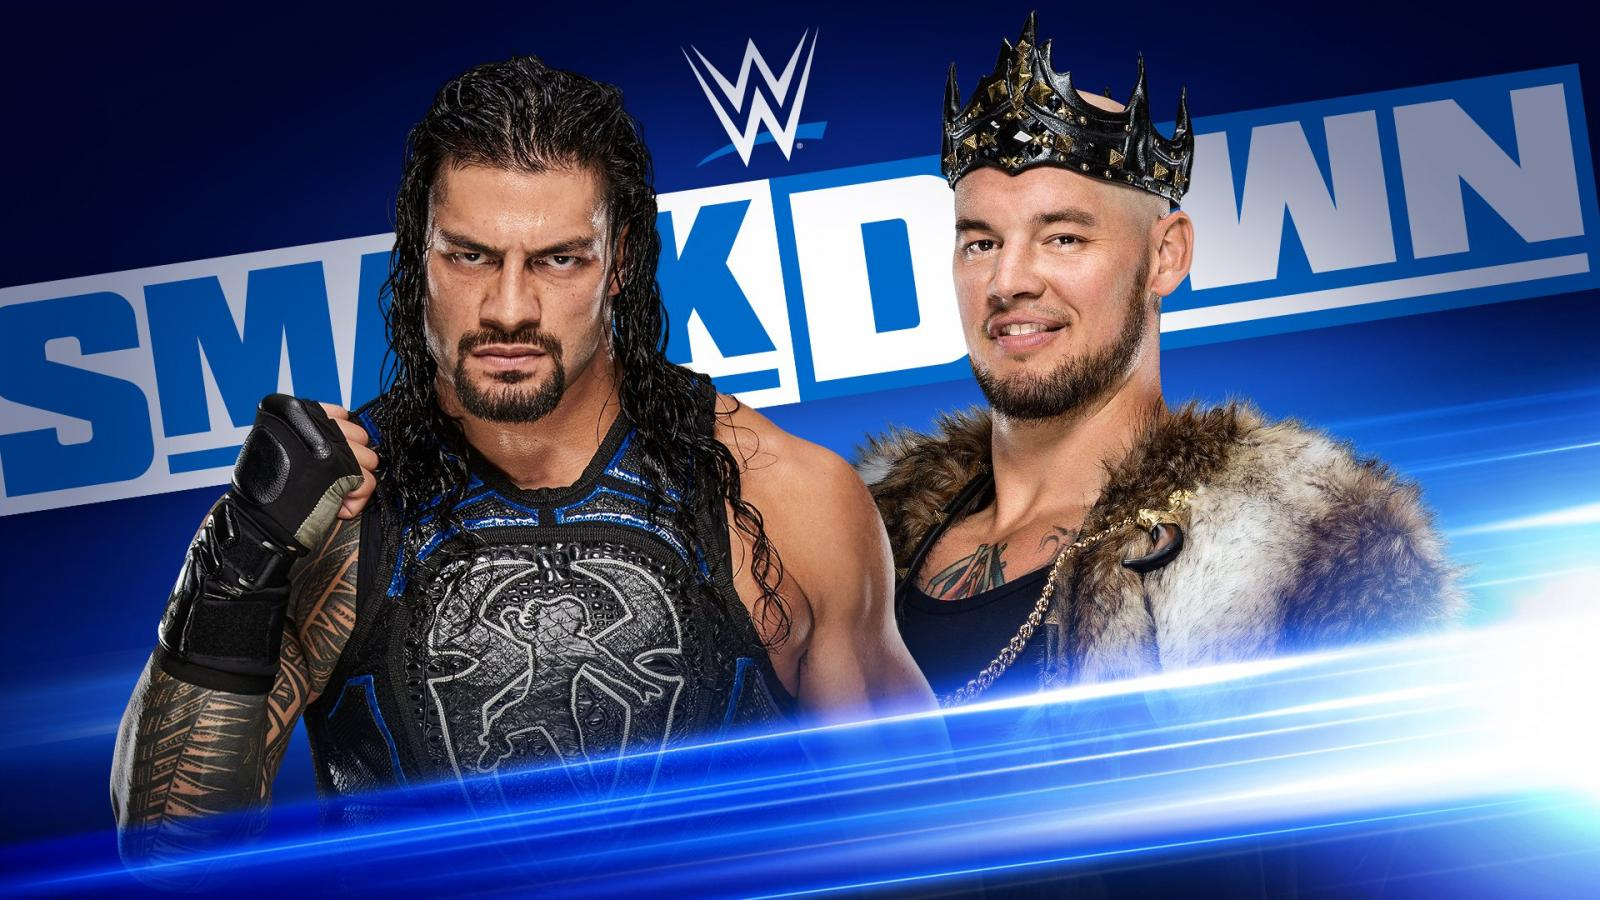 Wwe Friday Night Smackdown Preview Schedule December 6 2019